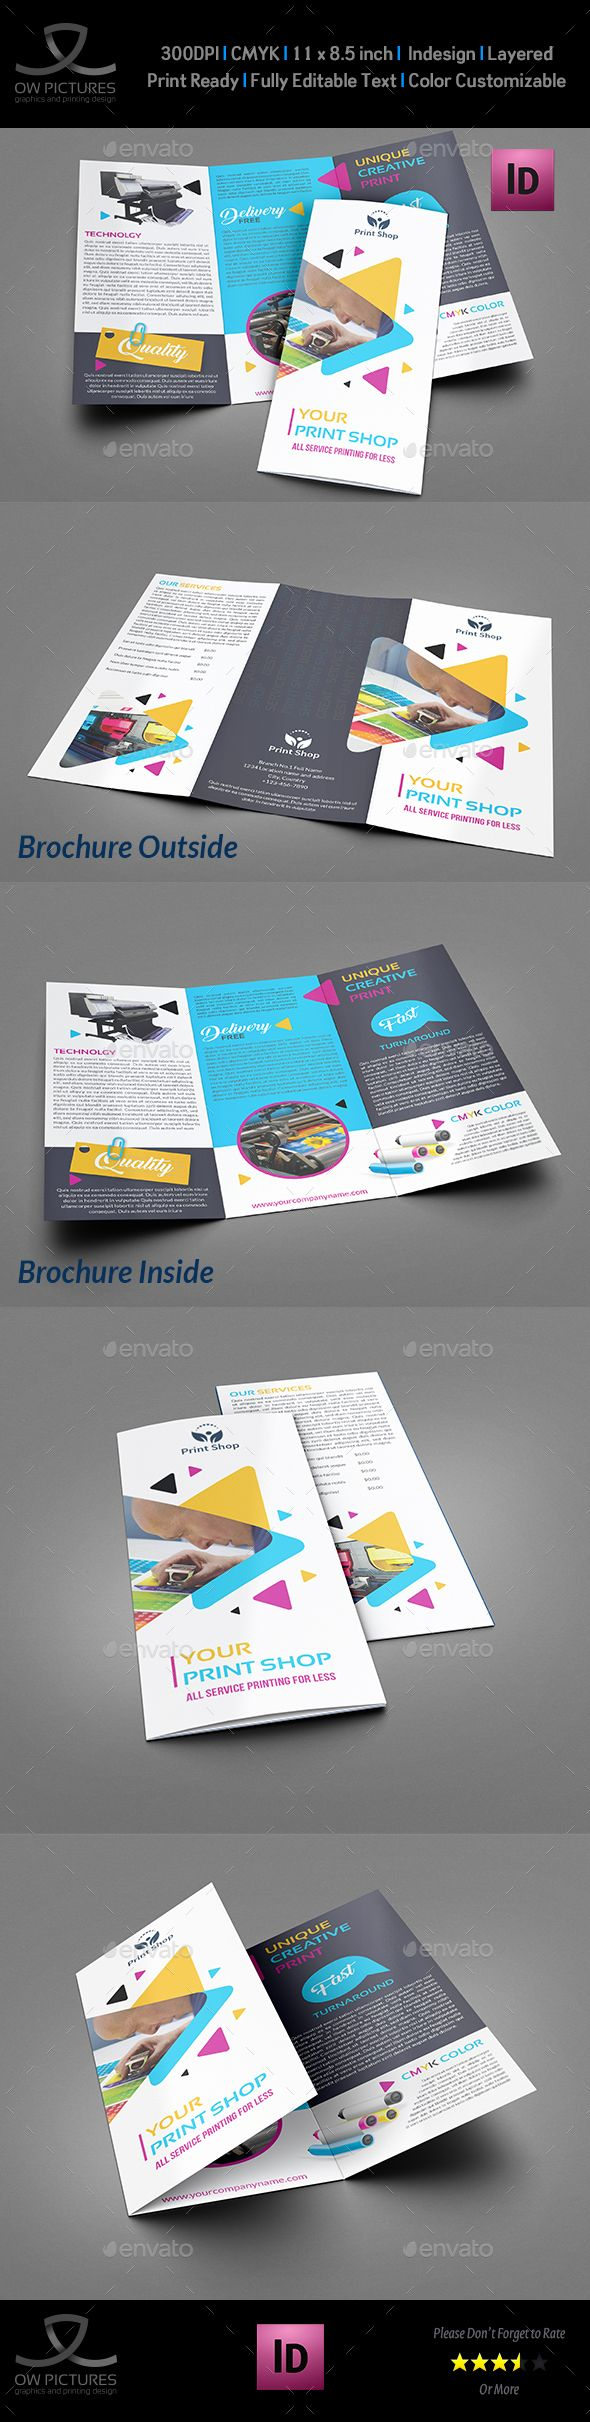 45 best DL Leaflet images on Pinterest | Page layout, Brochures and ...